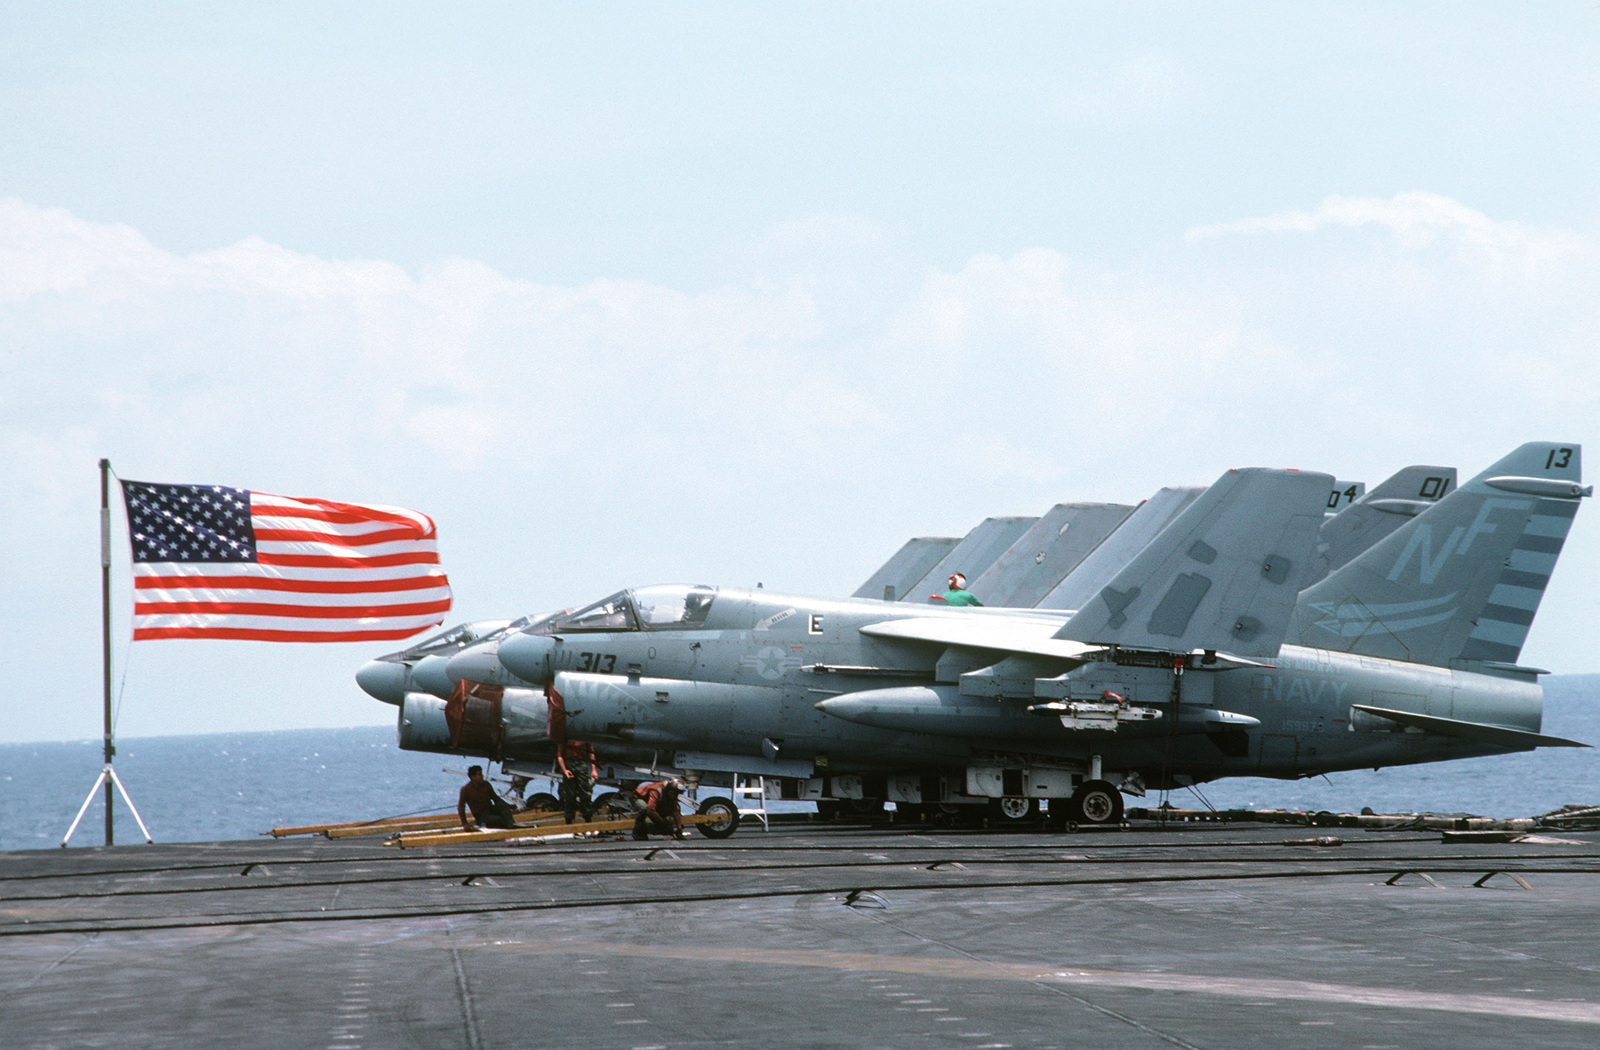 A row of A-7 Corsair II aircraft on the flight deck of the aircraft carrier USS MIDWAY (CV 41)